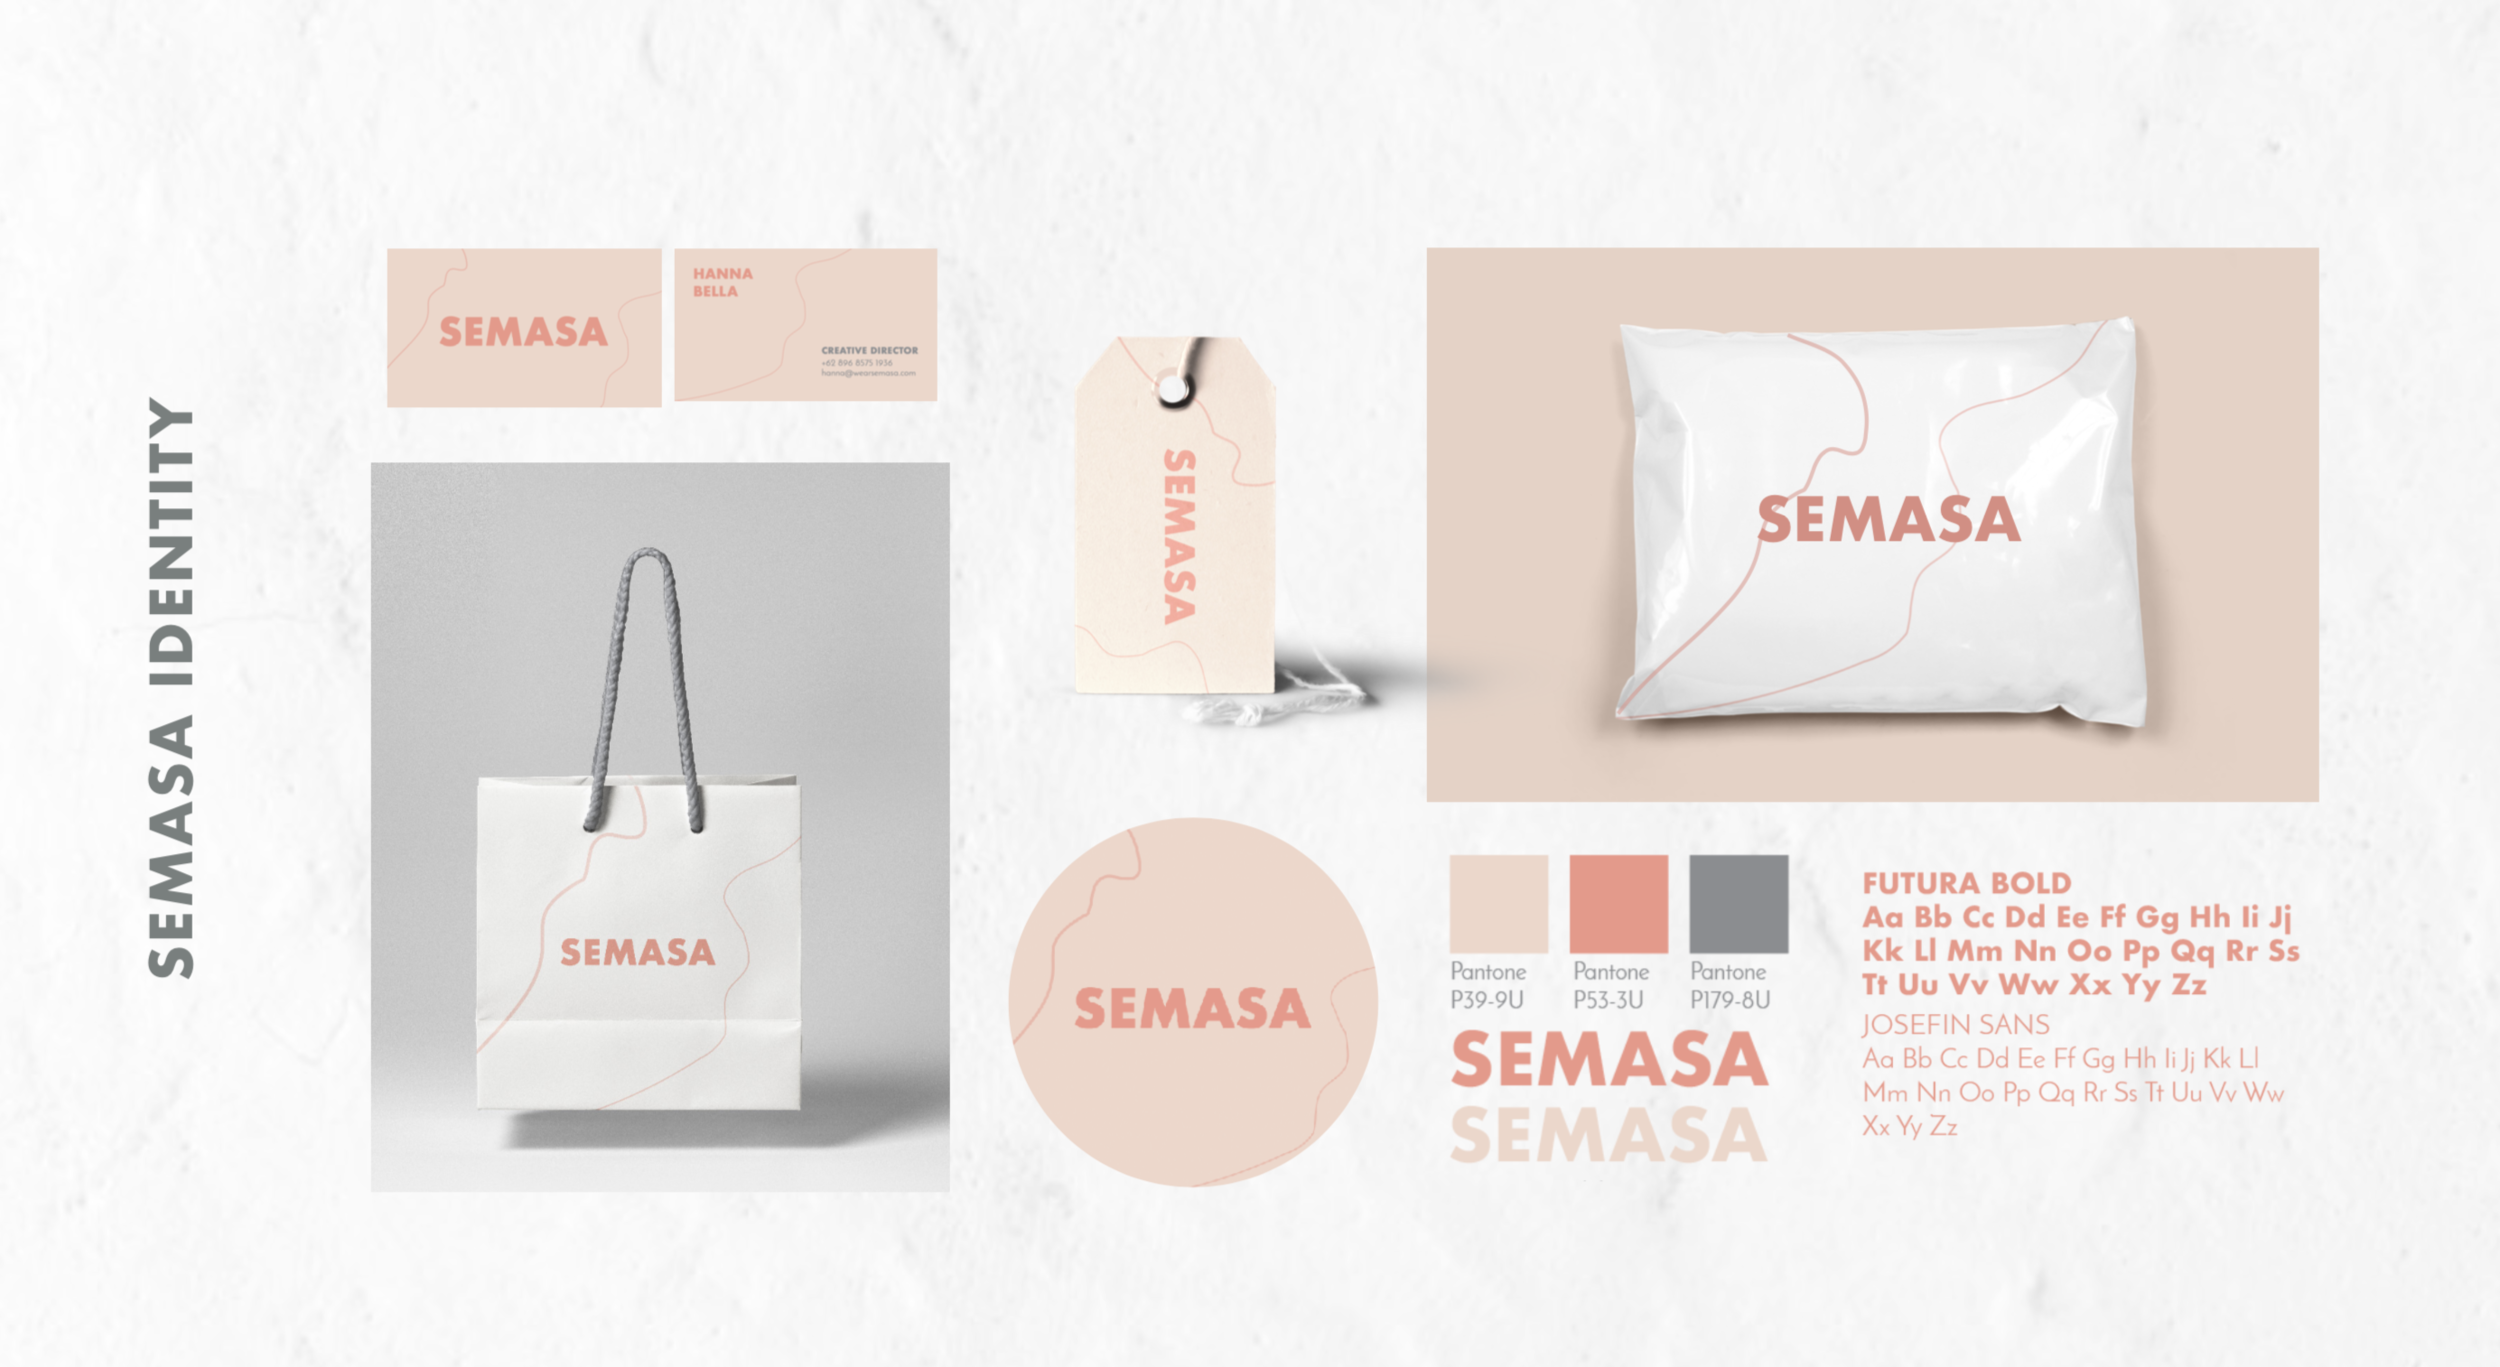 Color, font, packaging, business identity of SEMASA